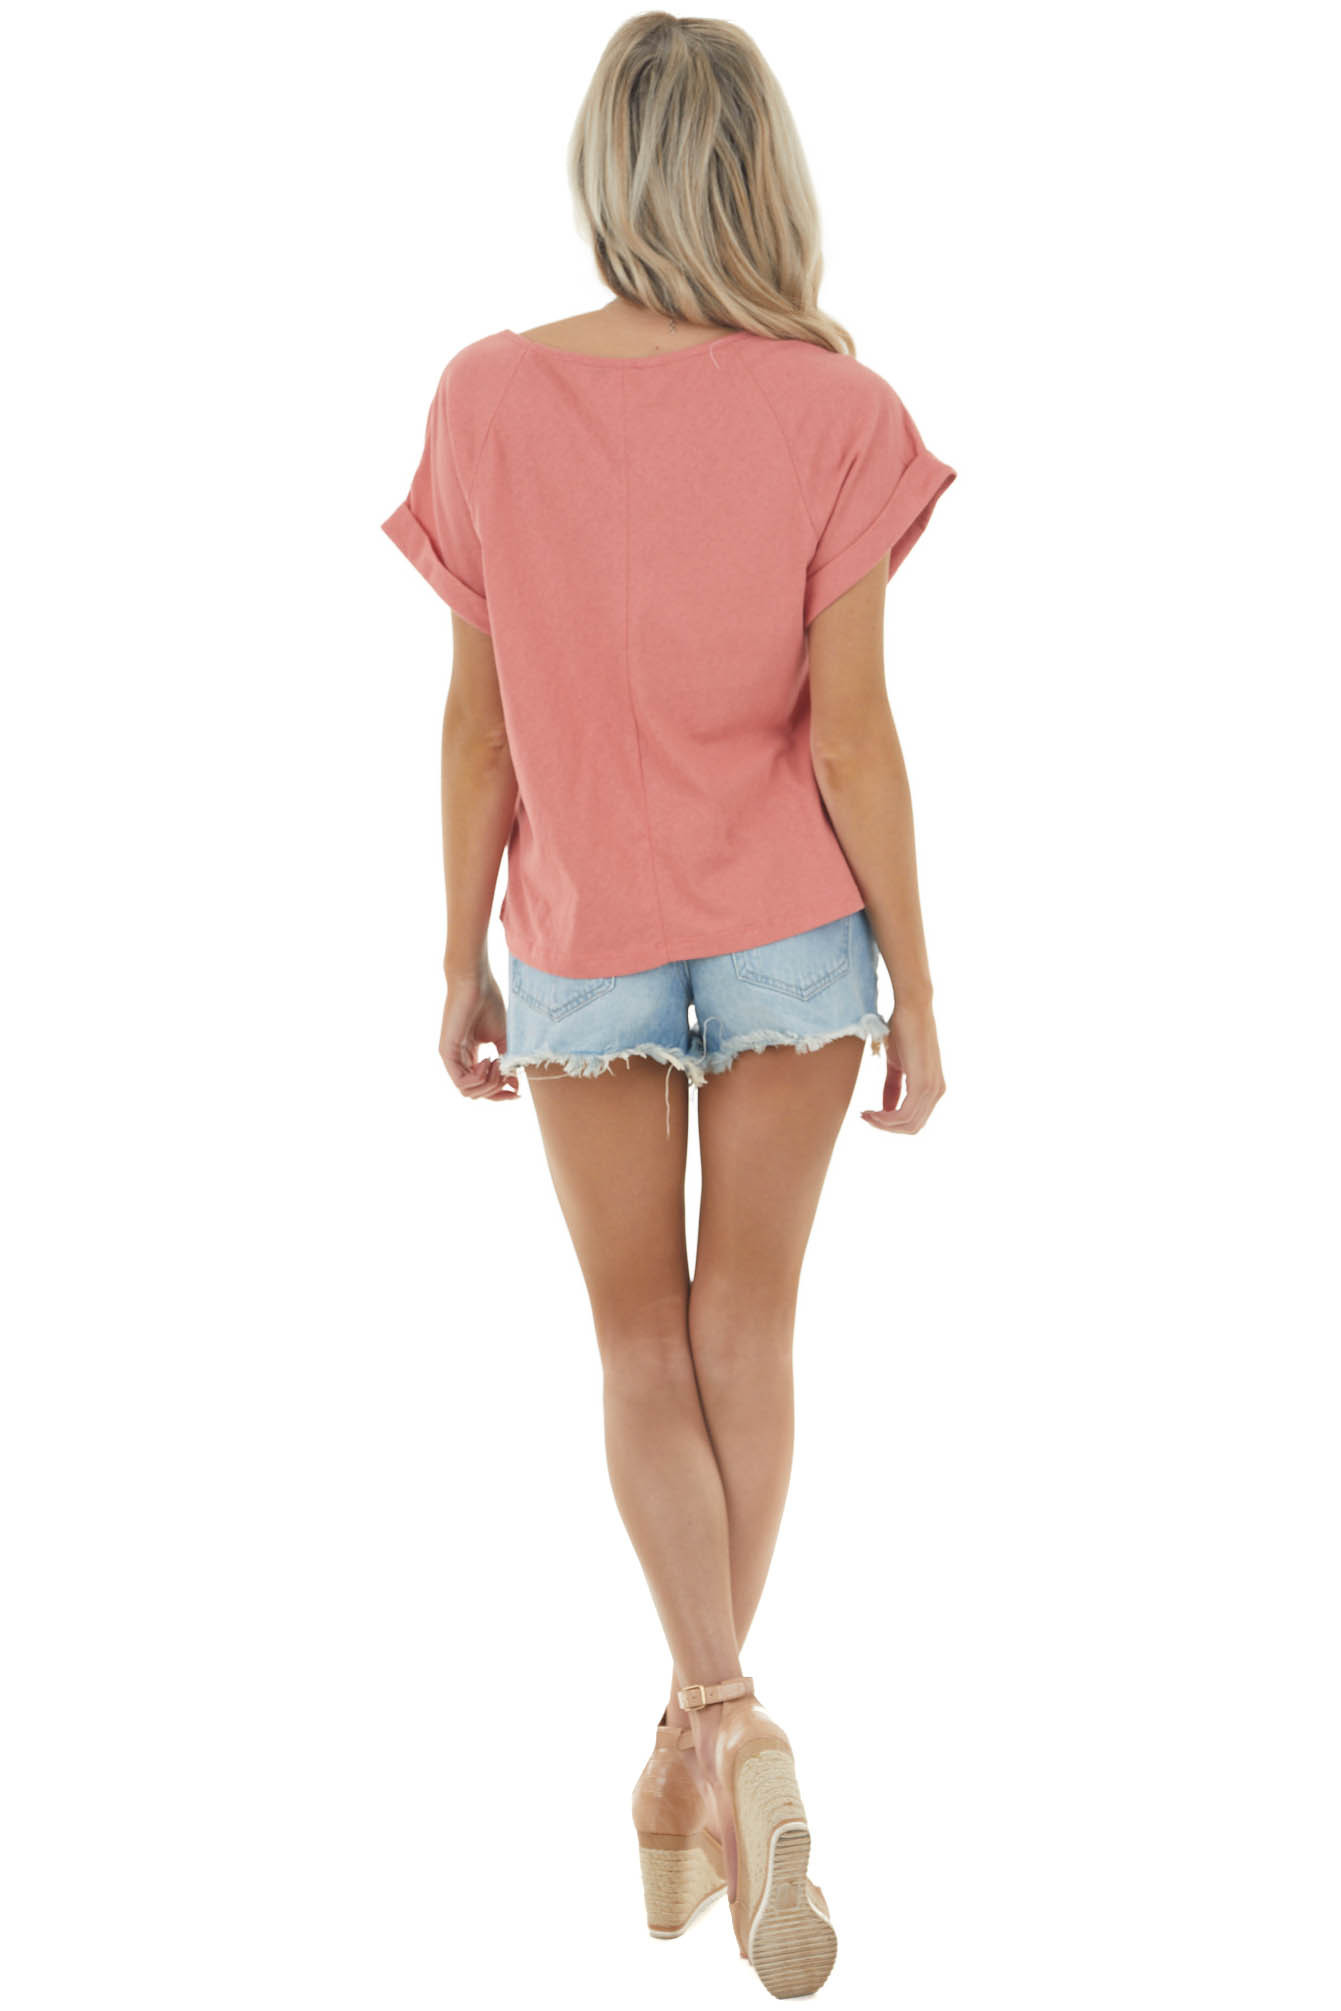 Punch Pink Round Neck Knit Top with Short Cuffed Sleeves